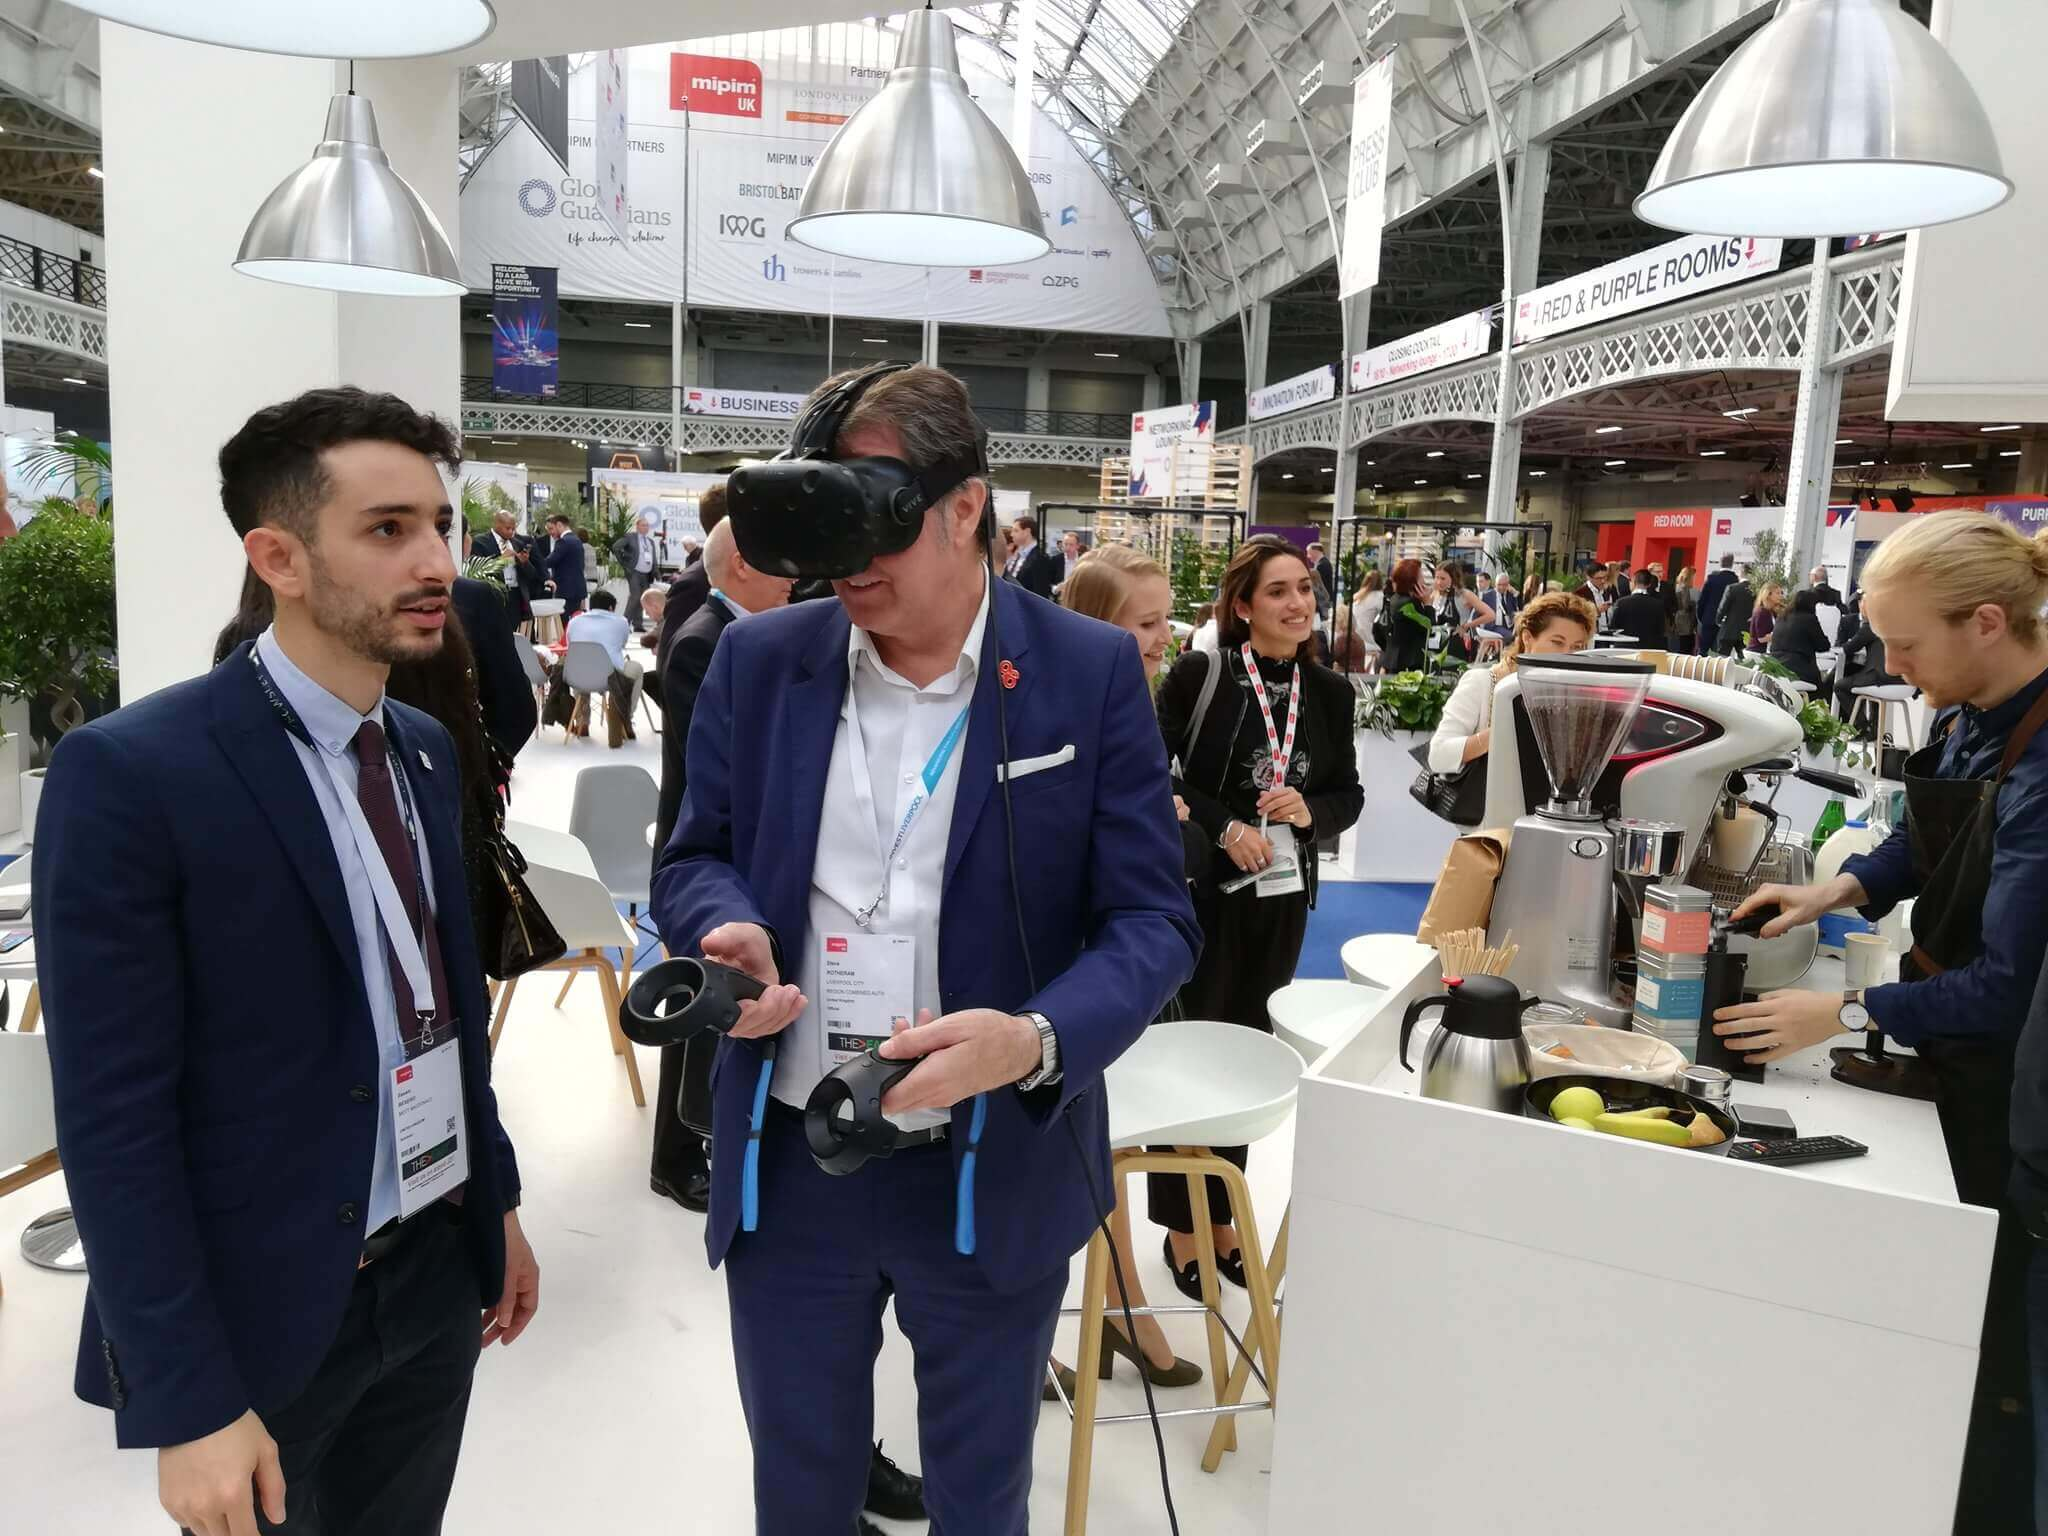 Two men trialling VR technology